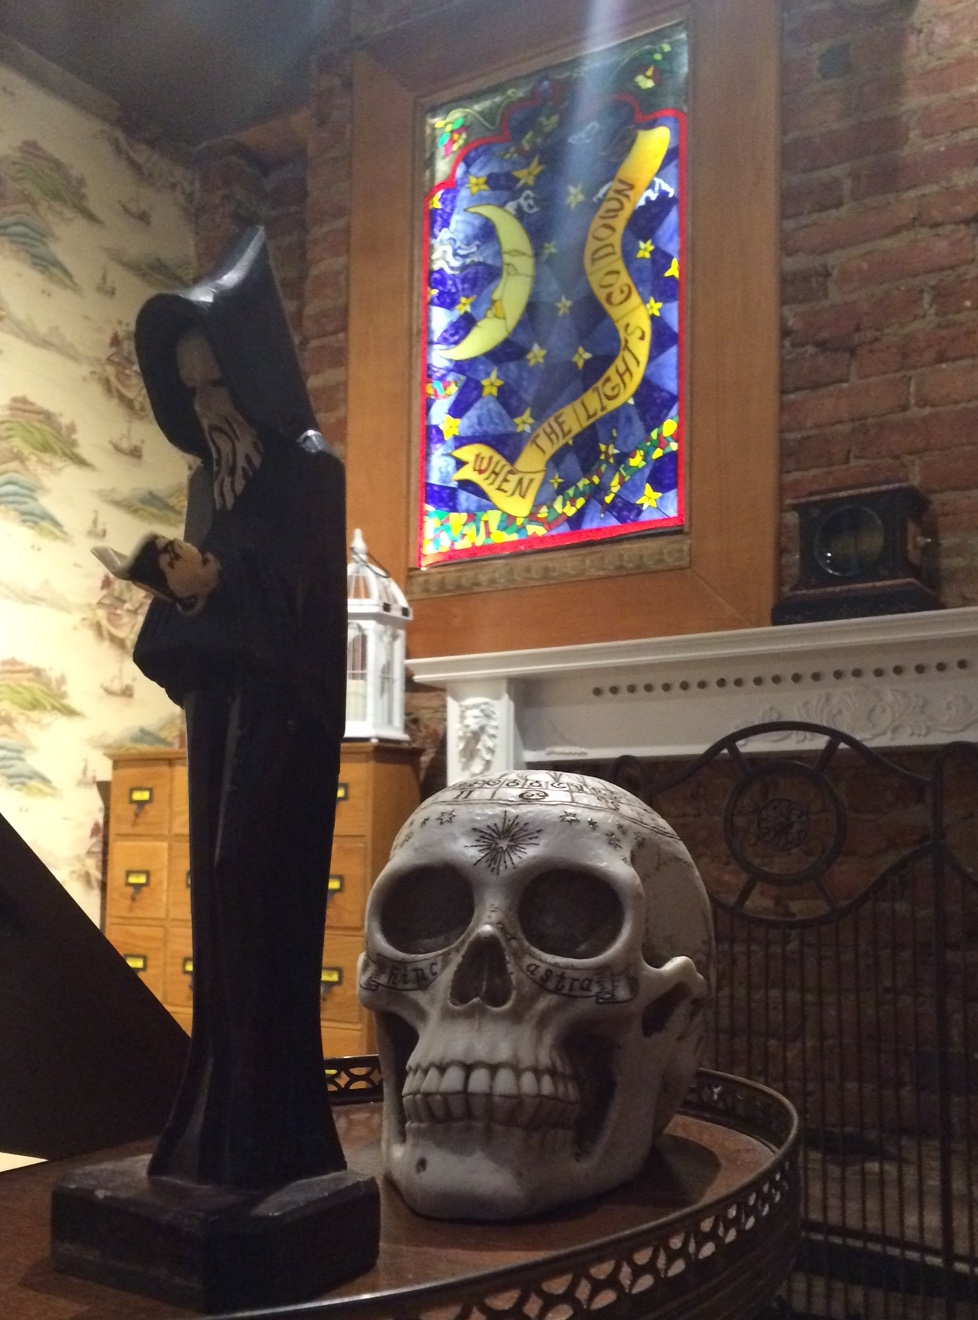 In-game photo of a wizard statue, an intricately engraved human skull, and a stainglass window in the background.